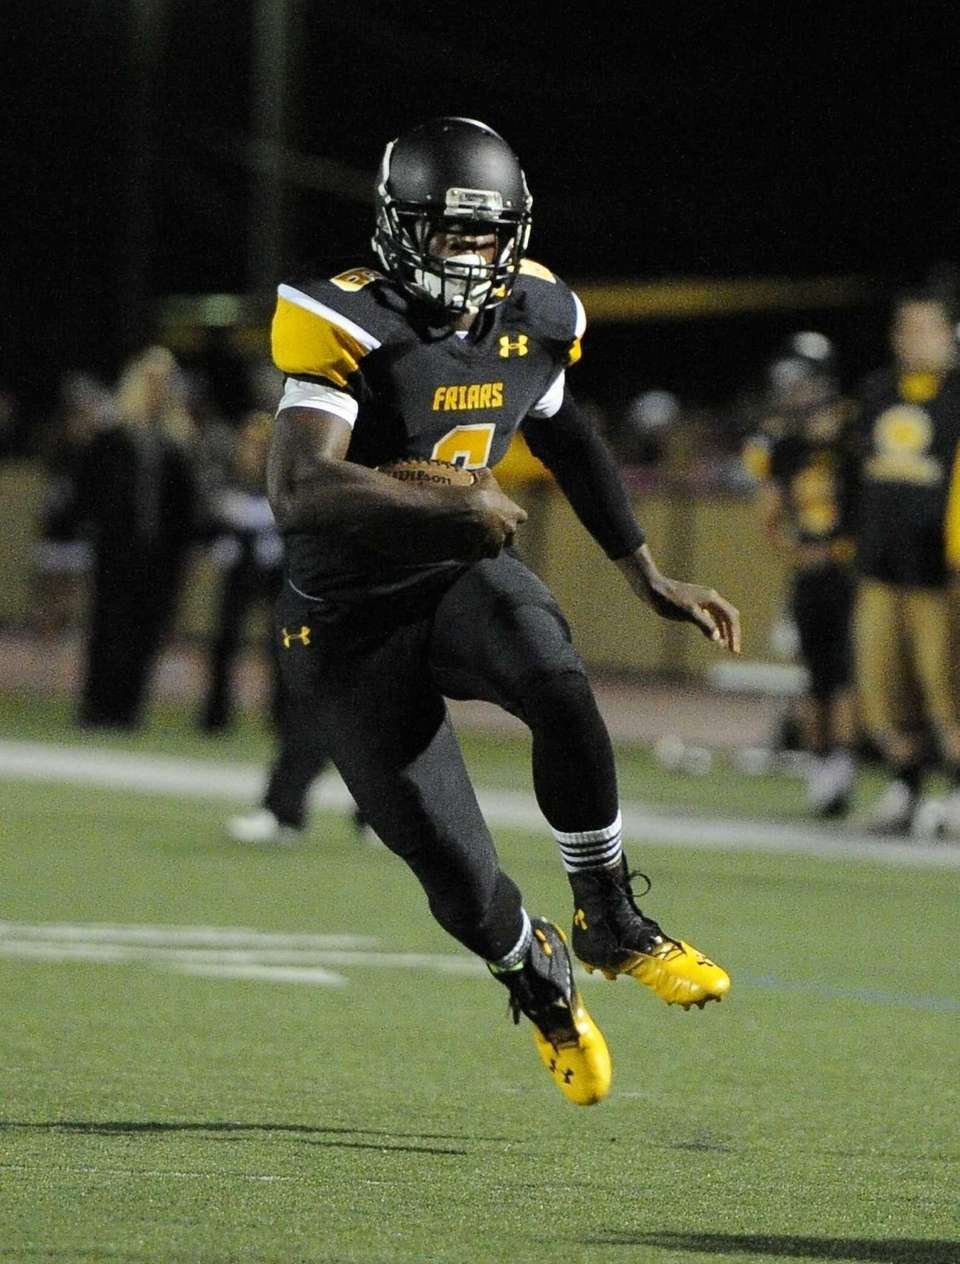 St. Anthony's running back Naim Jones drives the